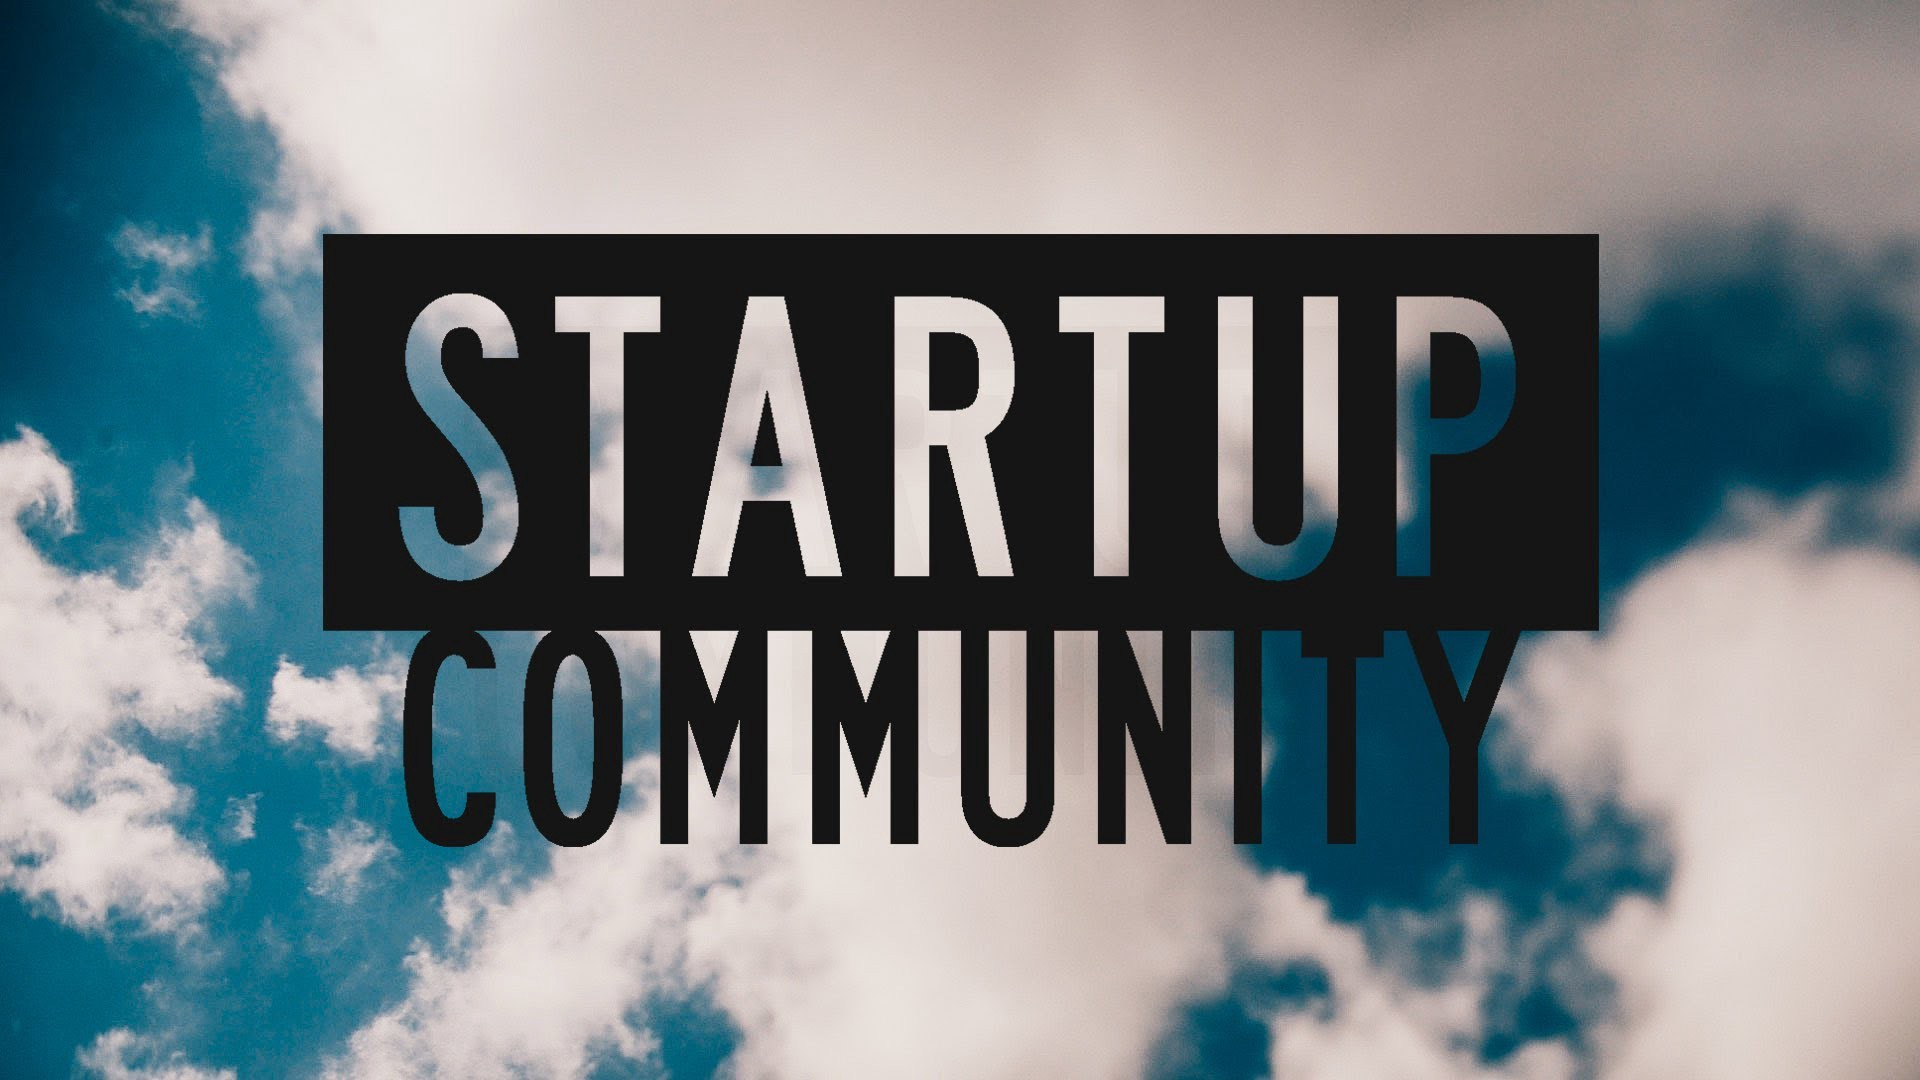 /how-i-built-the-most-active-startup-community-of-india-dfd83e8fe687 feature image